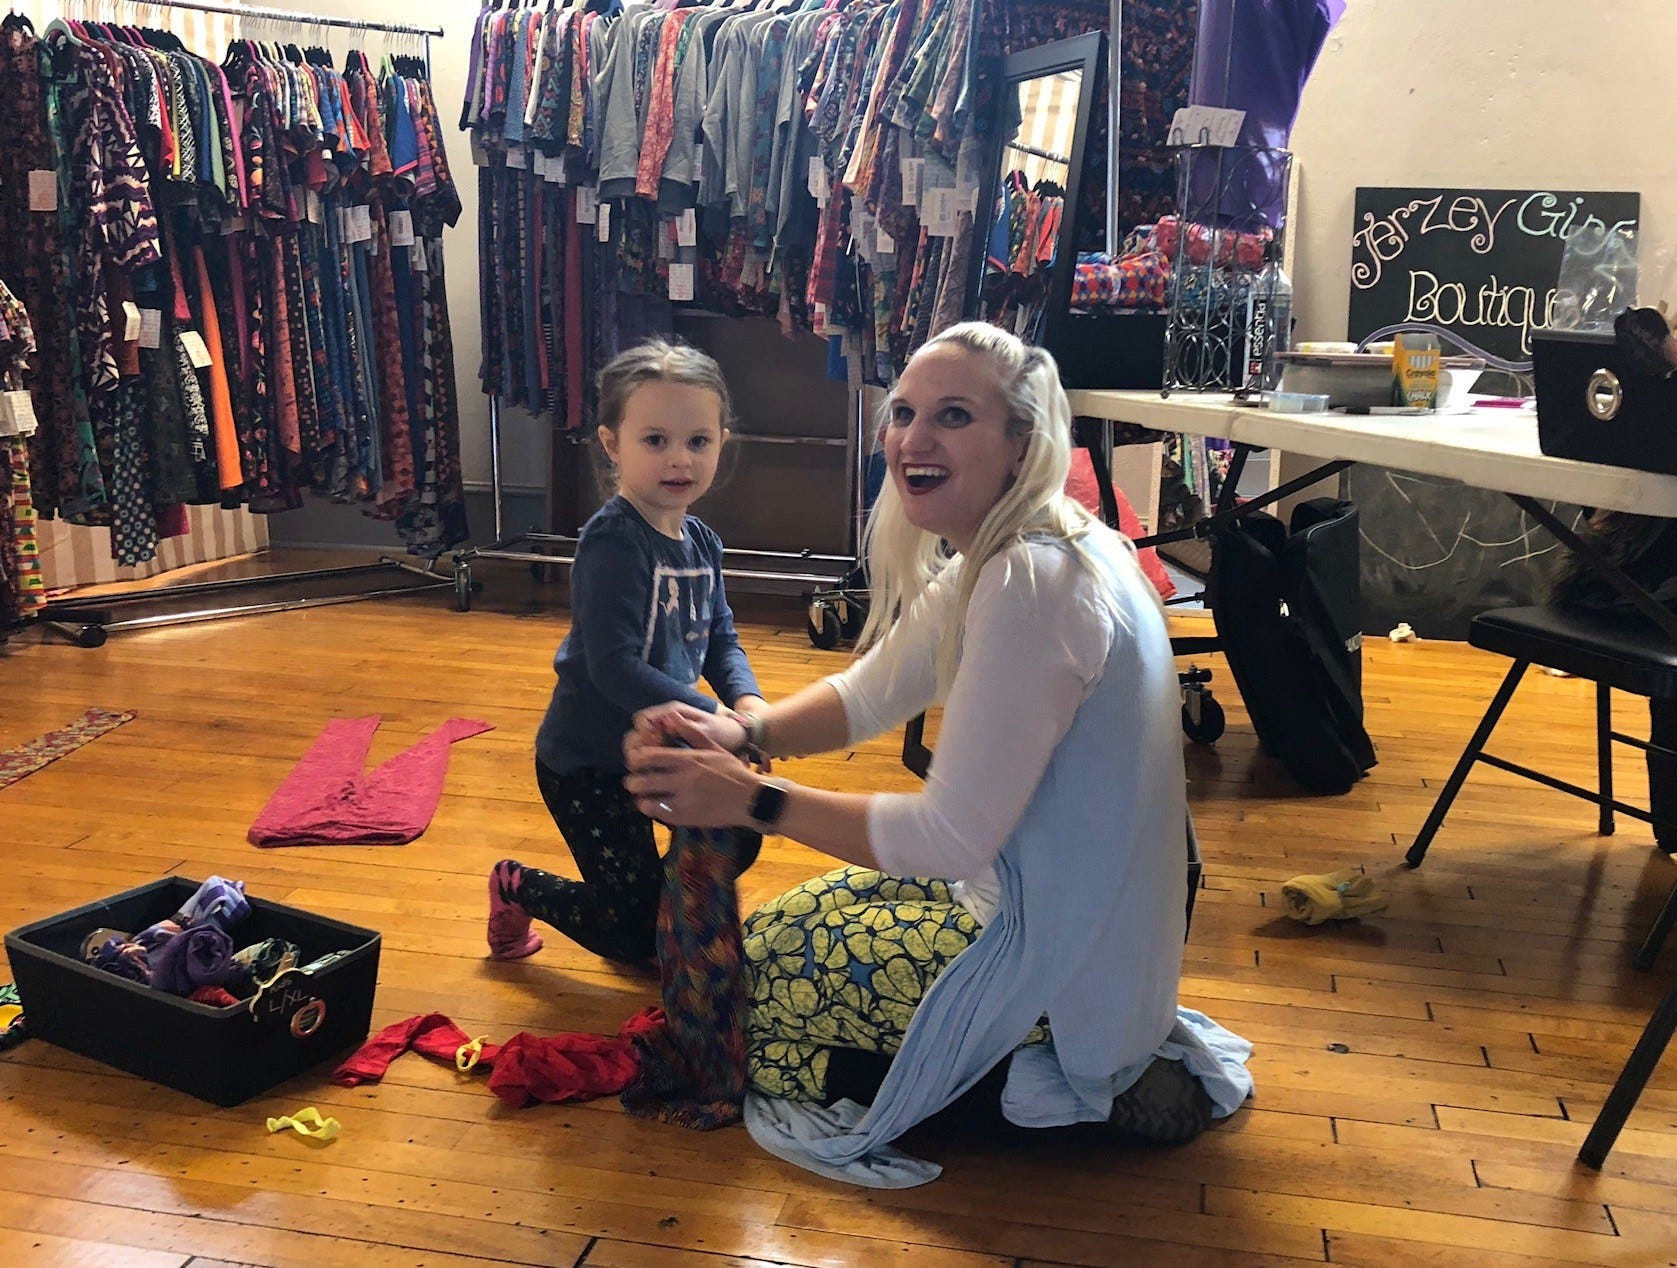 Samatha Wilbur of Jerzey Girlz Boutique, gets help from Grace Nairn, 4, at a Merchantville pop-up market. Grace's mom, Megan Grace, sets up  a table with her hand-knitted items.